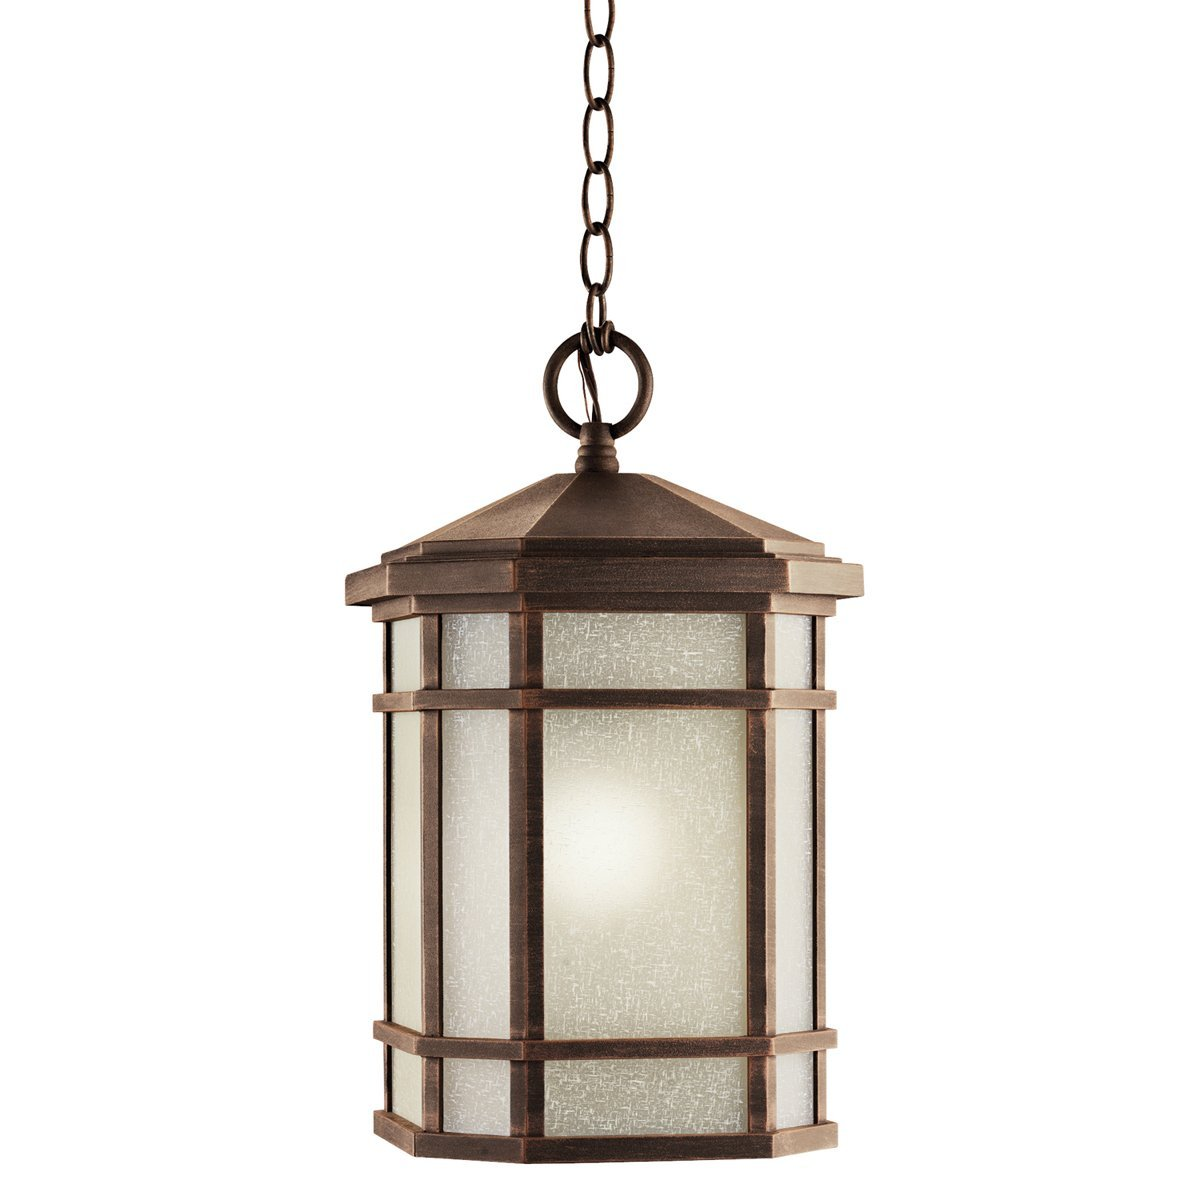 (Ship from USA) Kichler 9511PR Cameron 1 Light Outdoor Hanging Pendant in Prairie Rock /ITEM NO#E8FH4F85467233